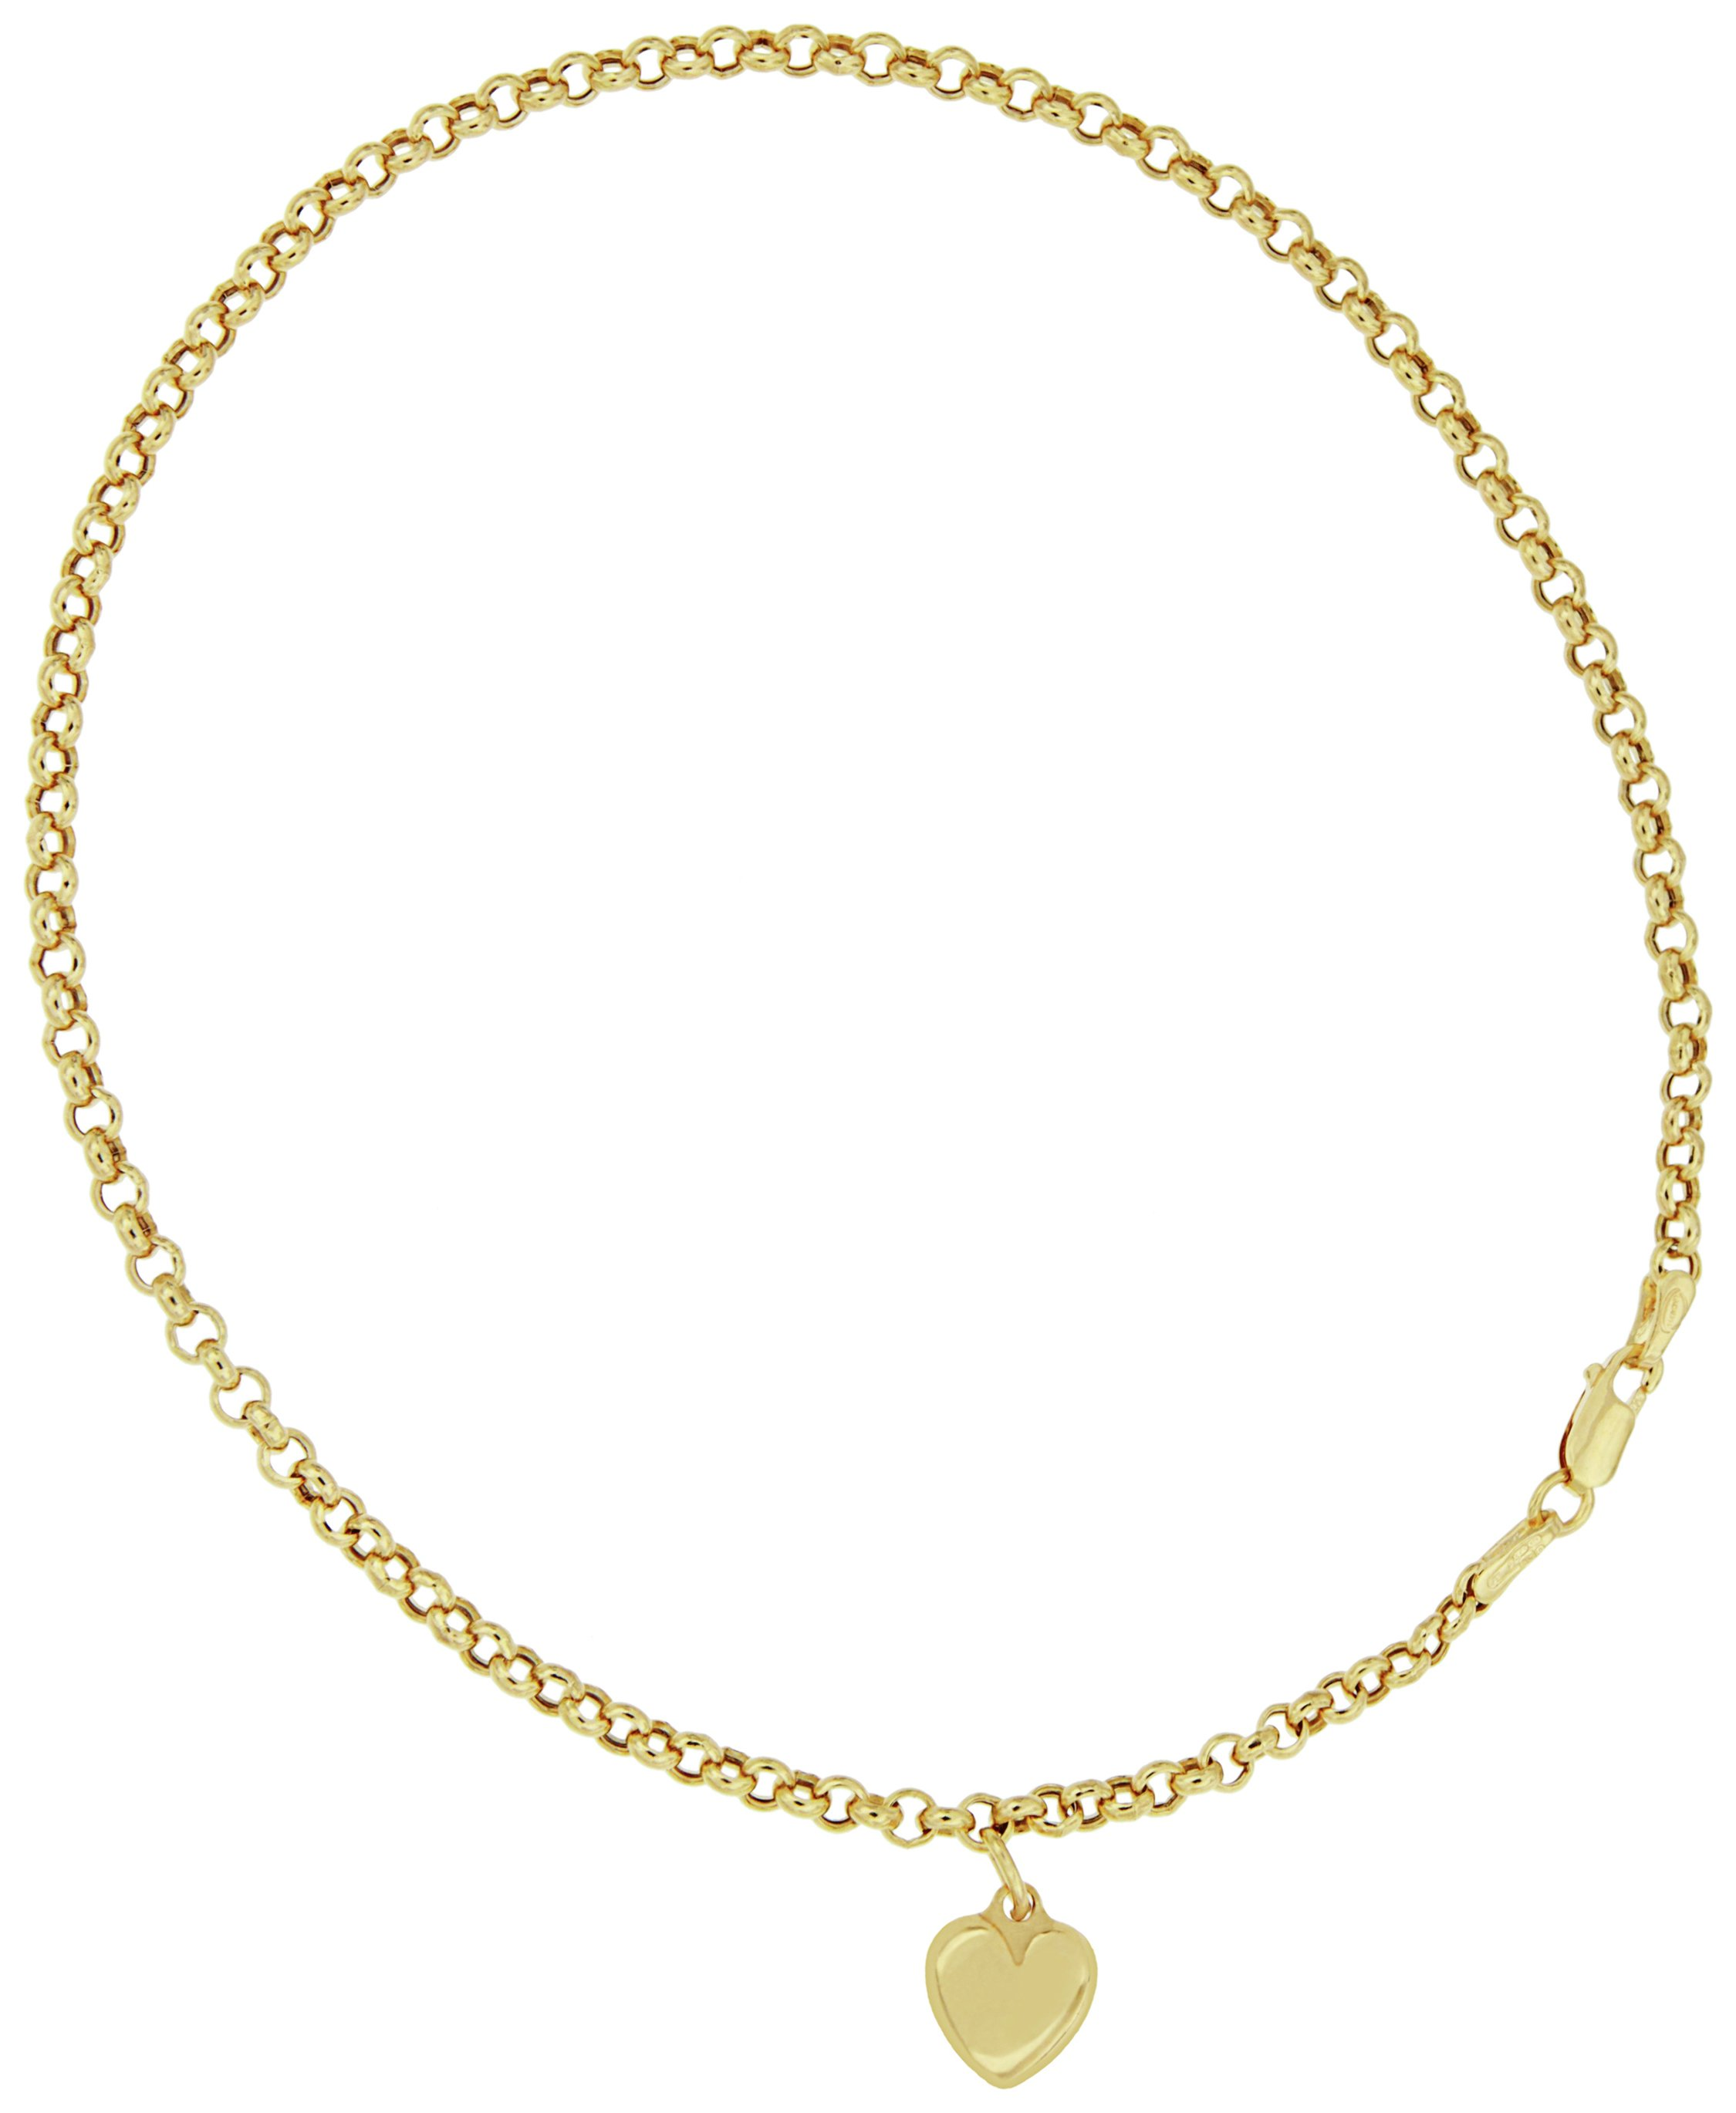 Bracci - 9 Carat Gold - Puffed Heart Charm Anklet.